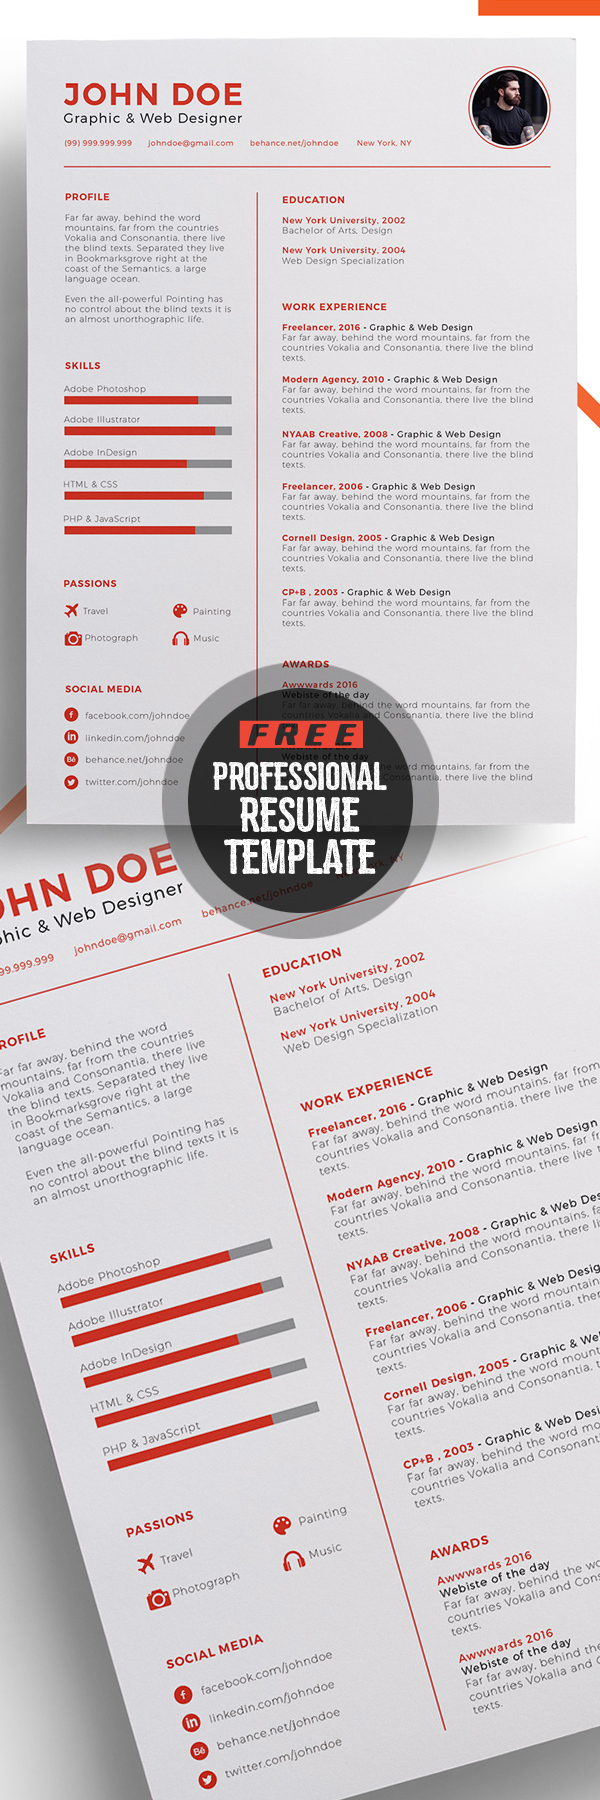 professional free resume template design. Resume Example. Resume CV Cover Letter